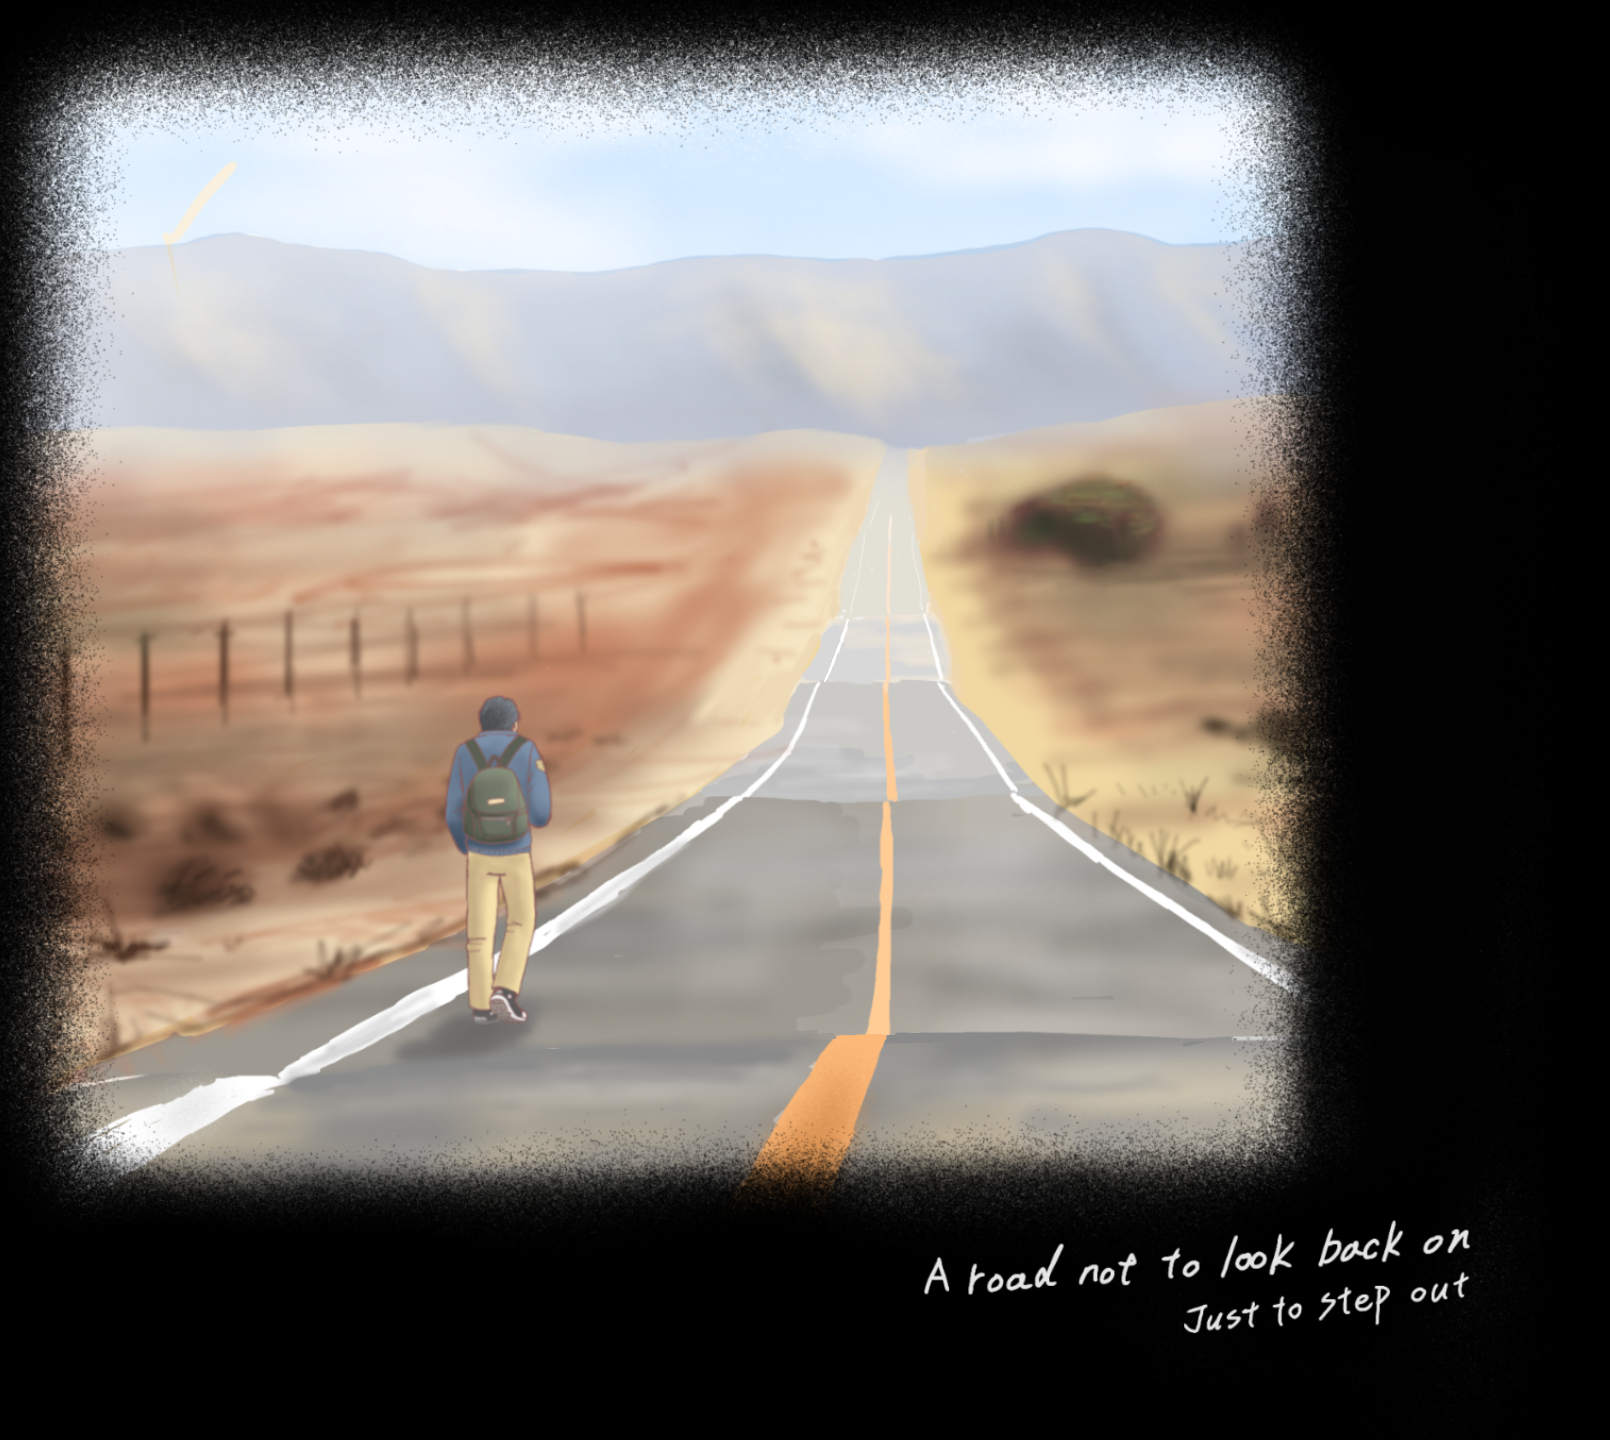 A road not to look back on